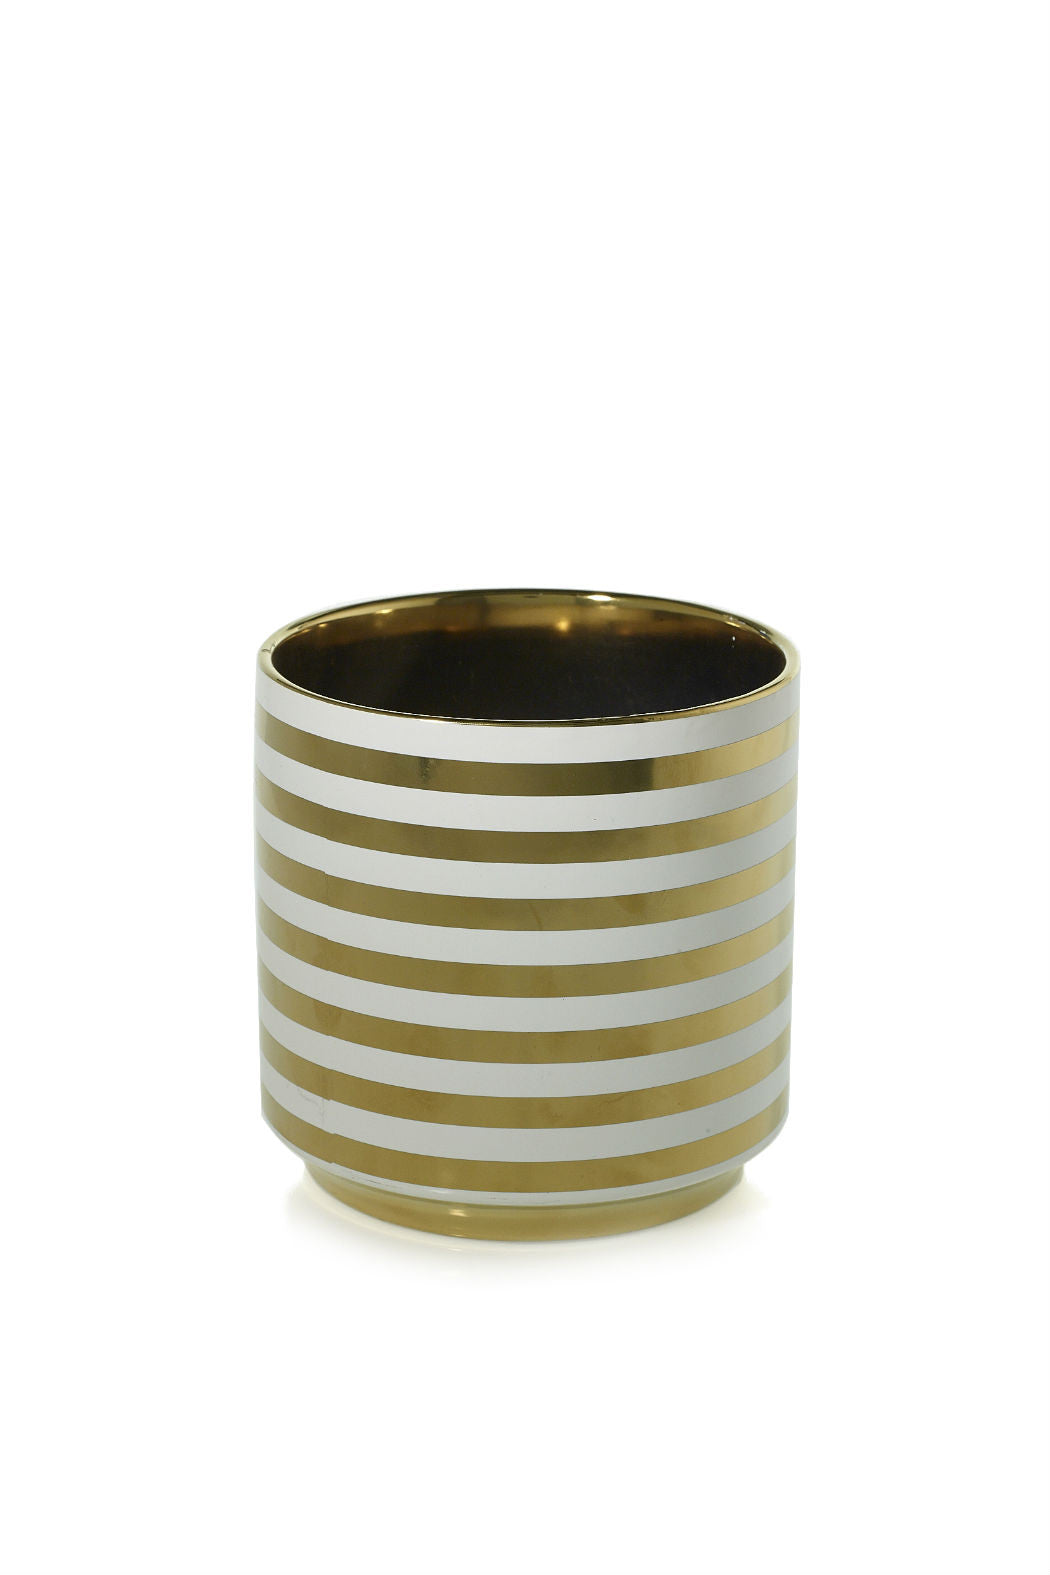 Gold Striped Pot - New Orientation  - 1